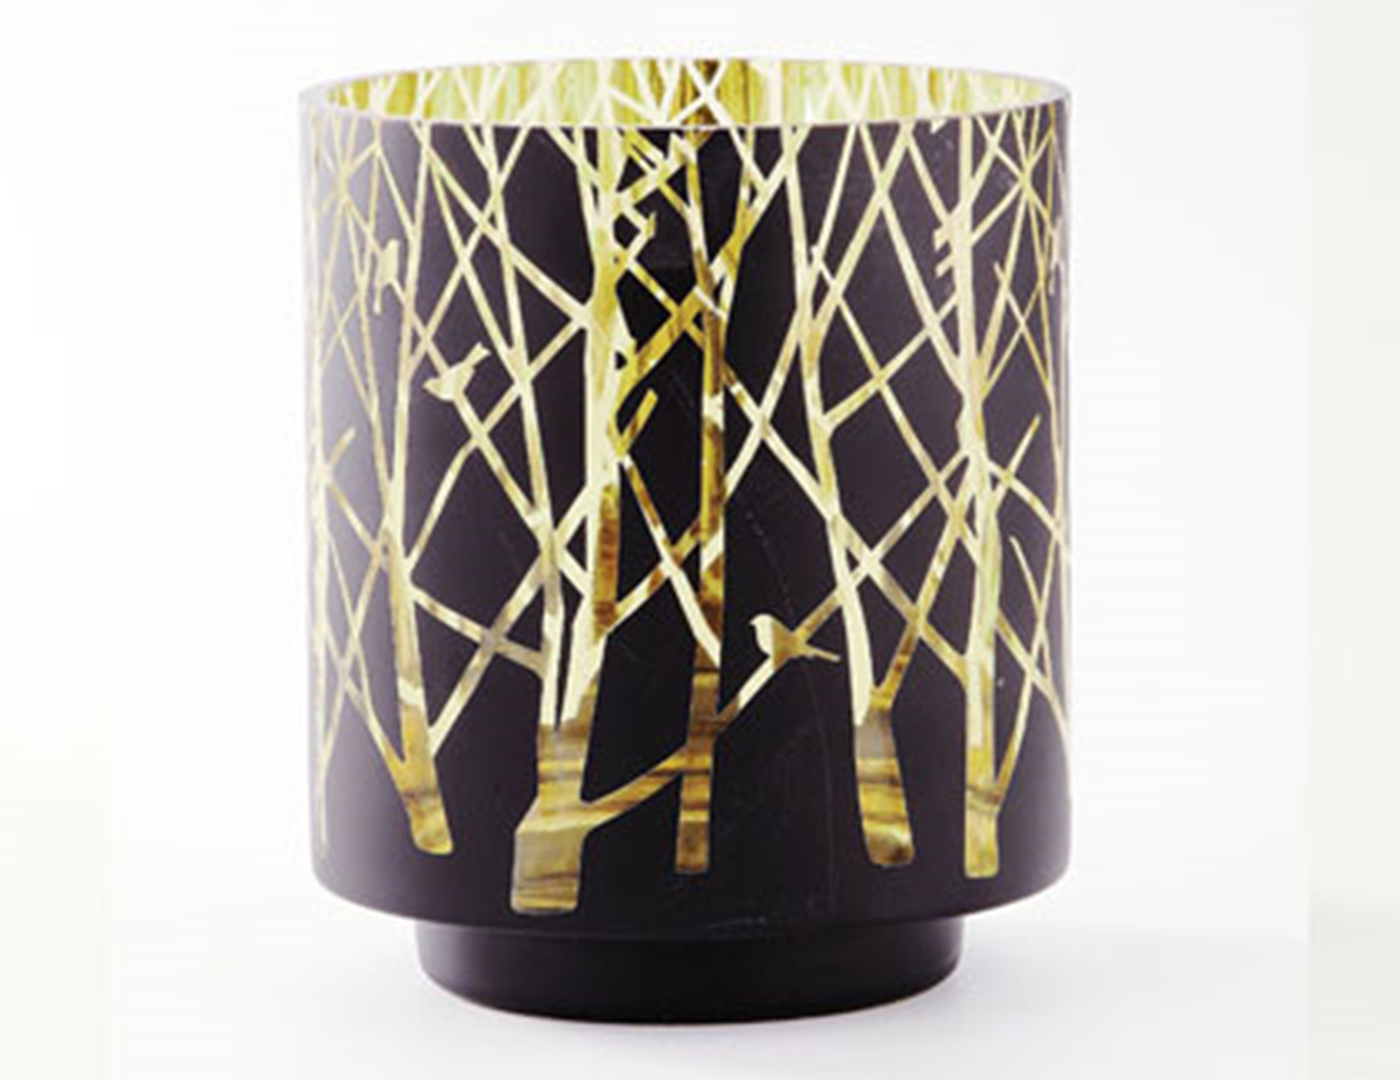 "Small Black and Gold Vase With Branches 6X6.5""H"